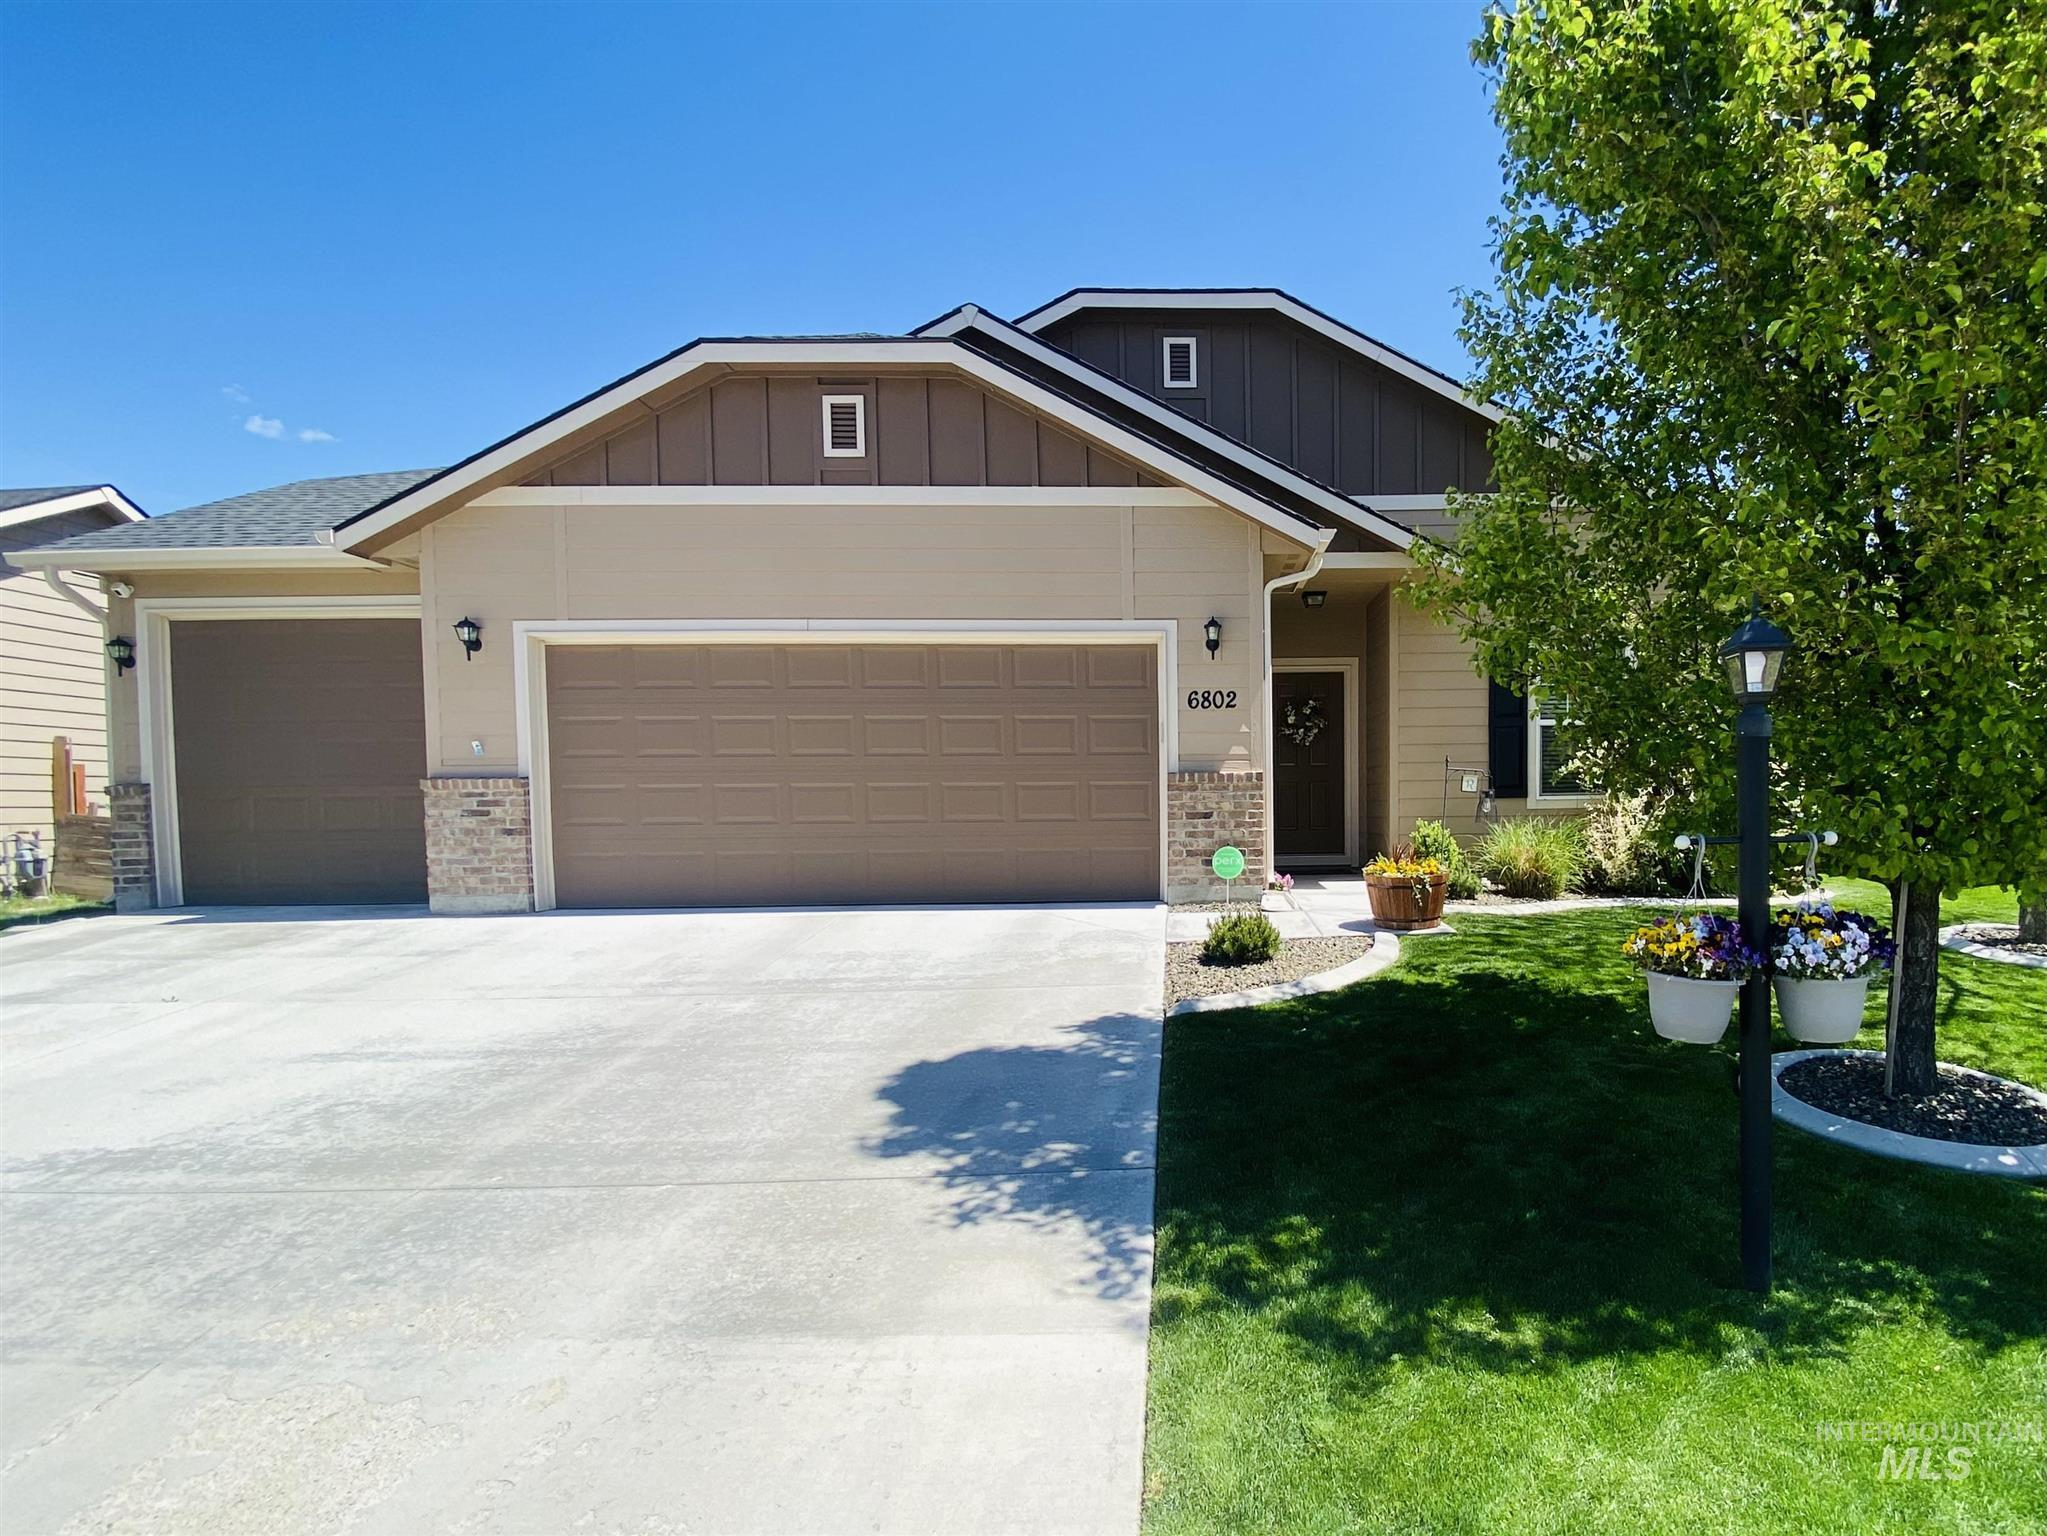 6802 S Mistyglen Ave. Property Photo - Boise, ID real estate listing